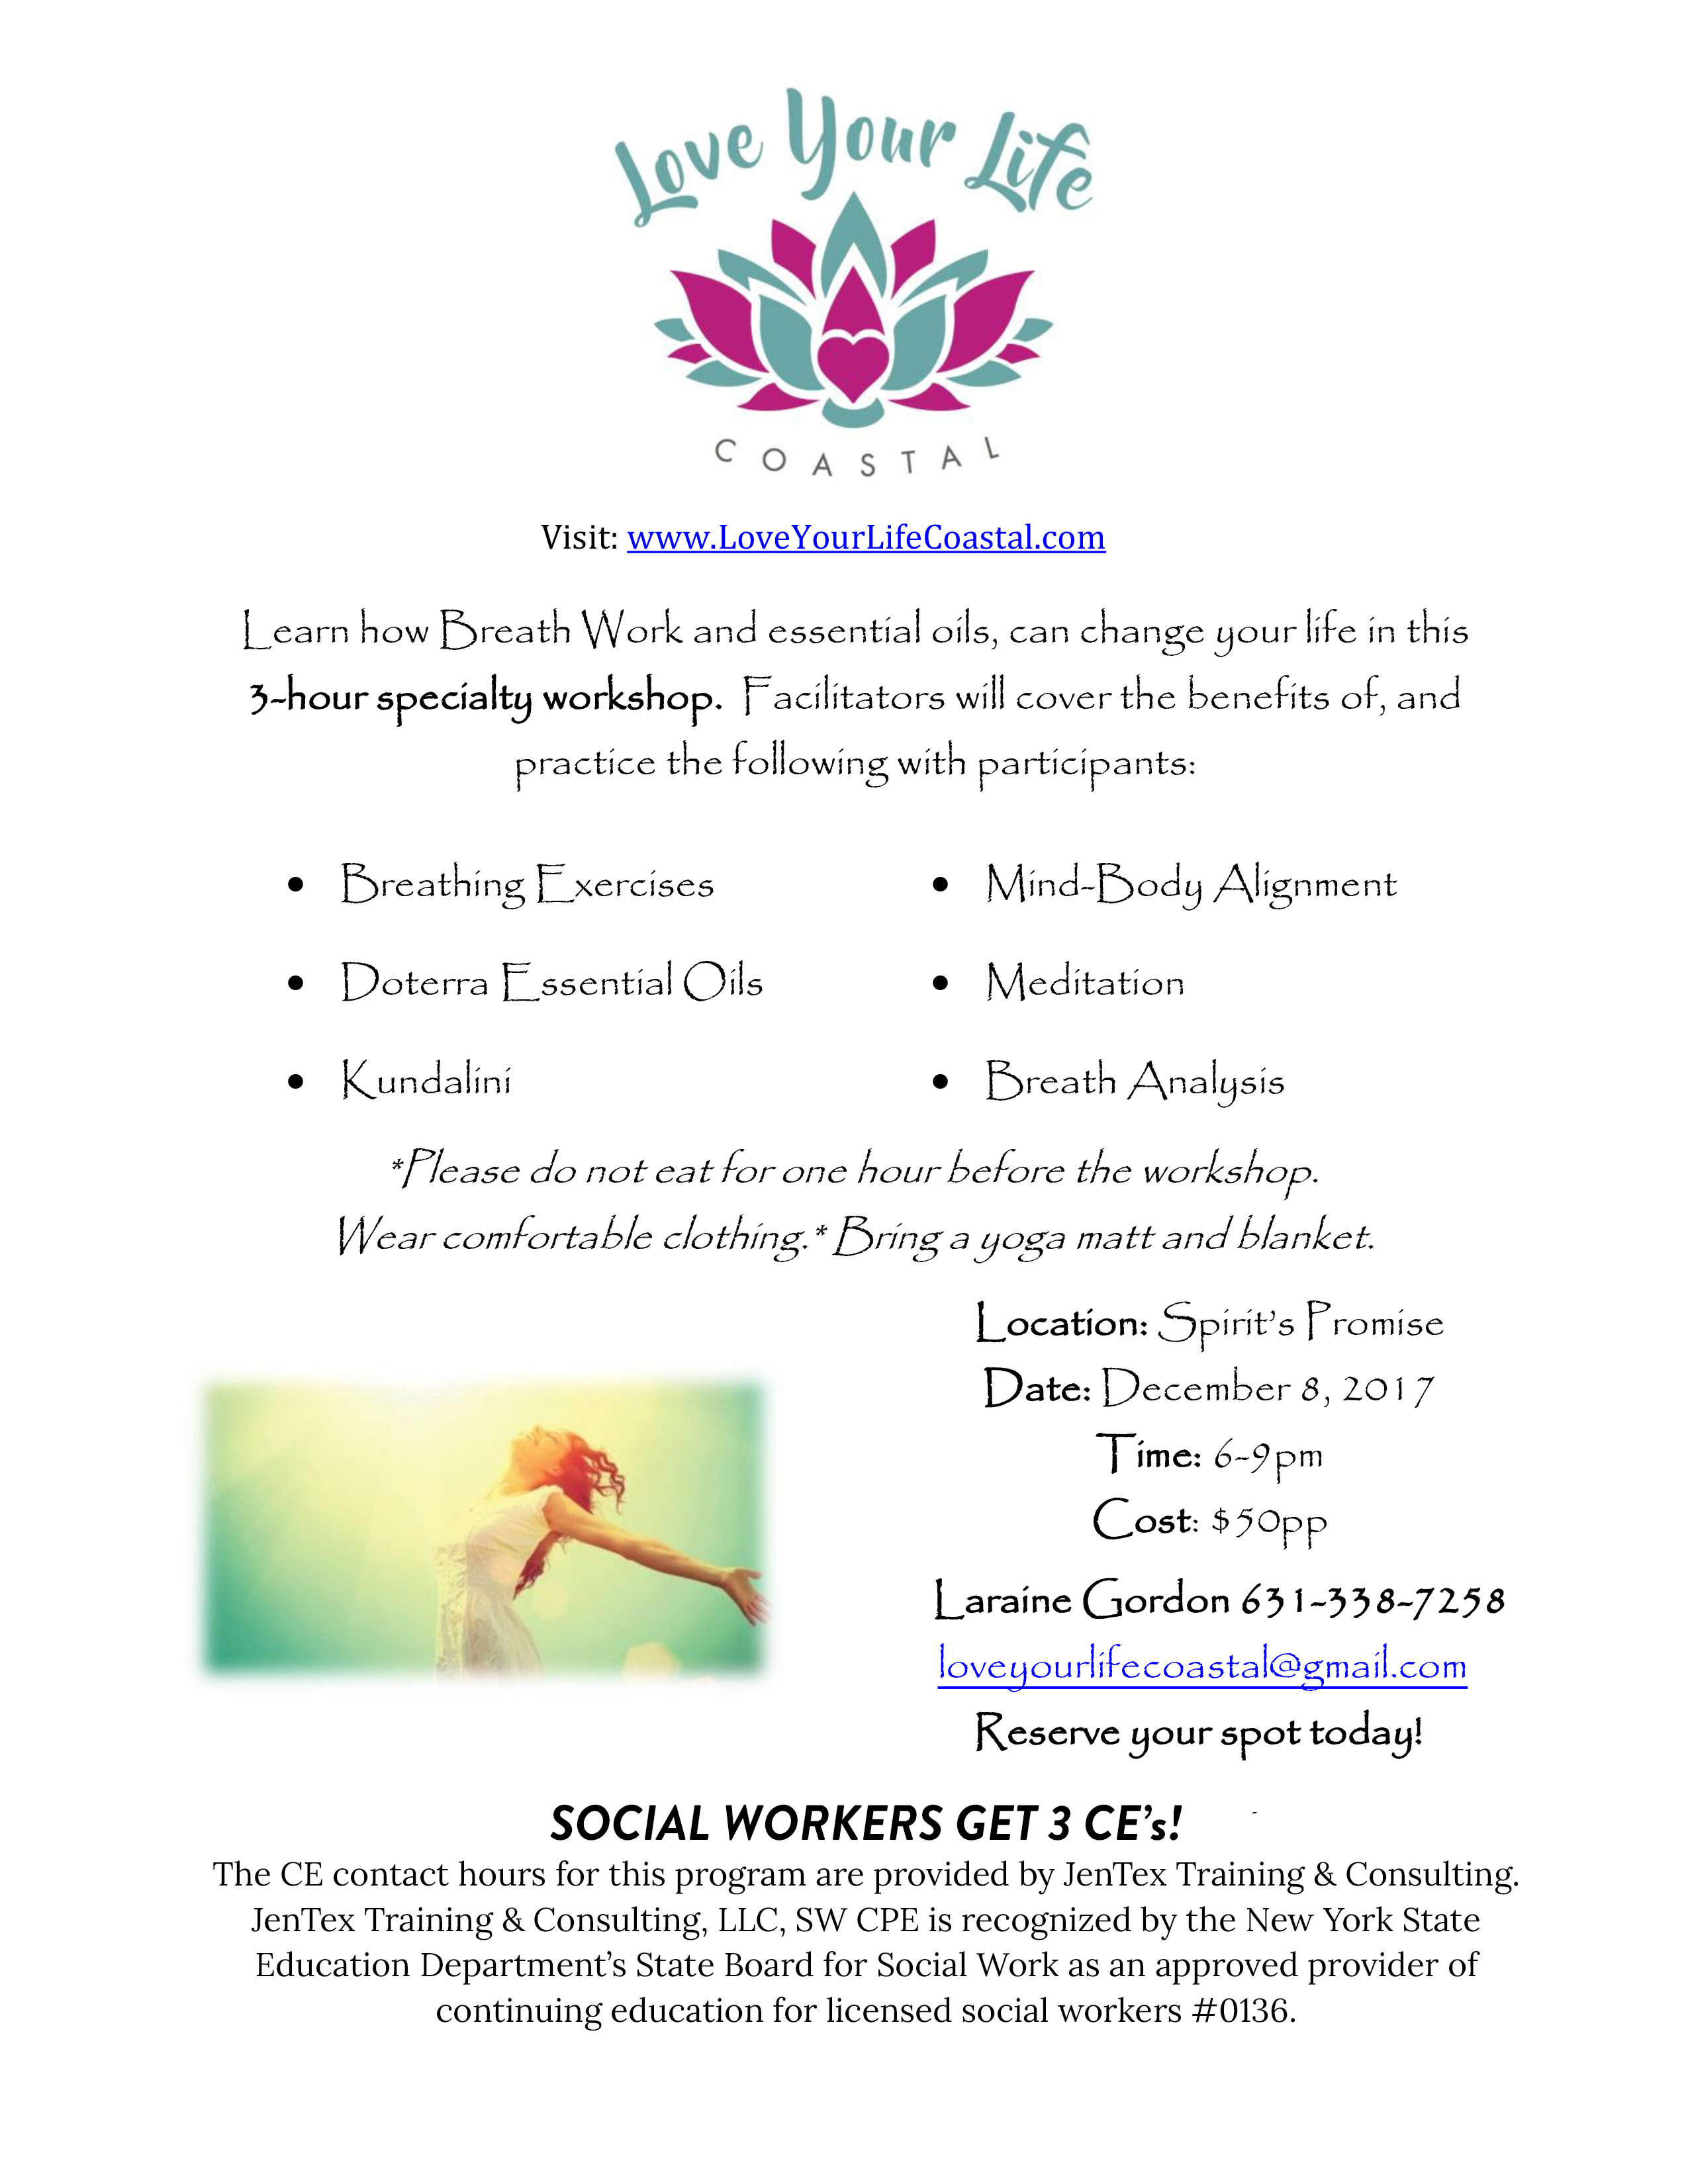 Breath Work at Spirits Promise Flyer - December 8th 2017